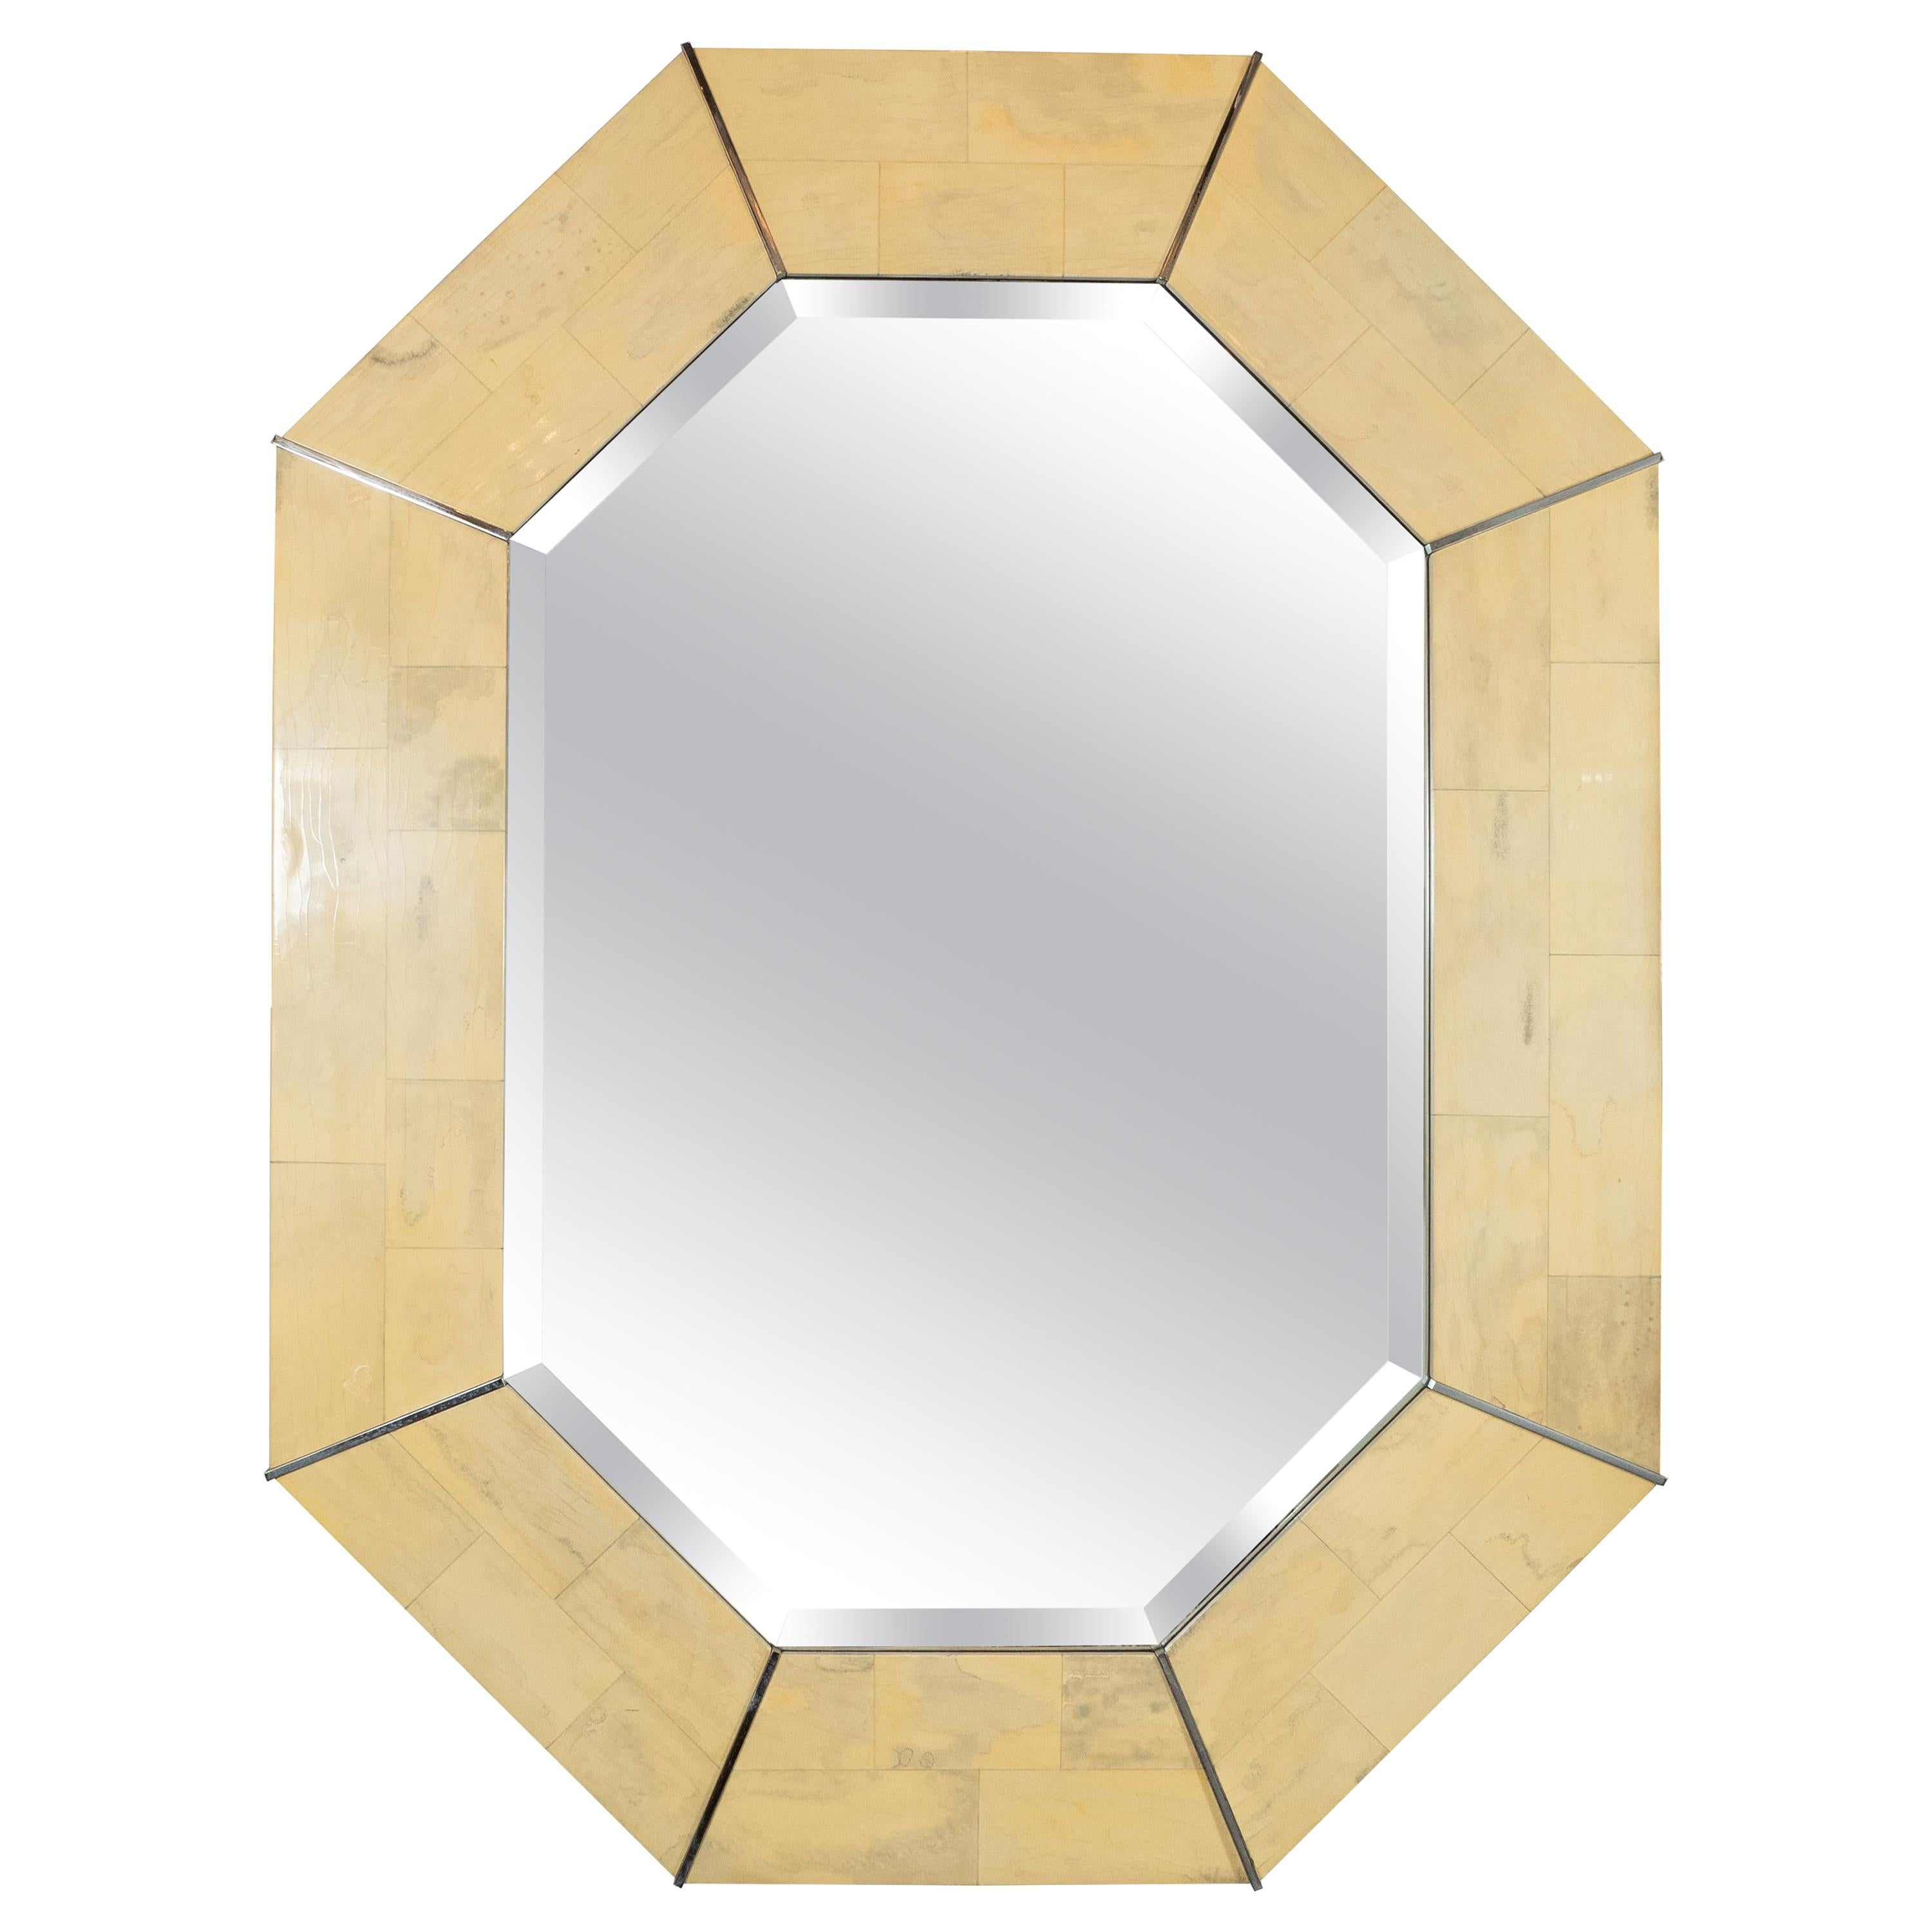 Karl Springer Midcentury Elongated 8-Sided Marbleized Lacquer and Brass Mirror